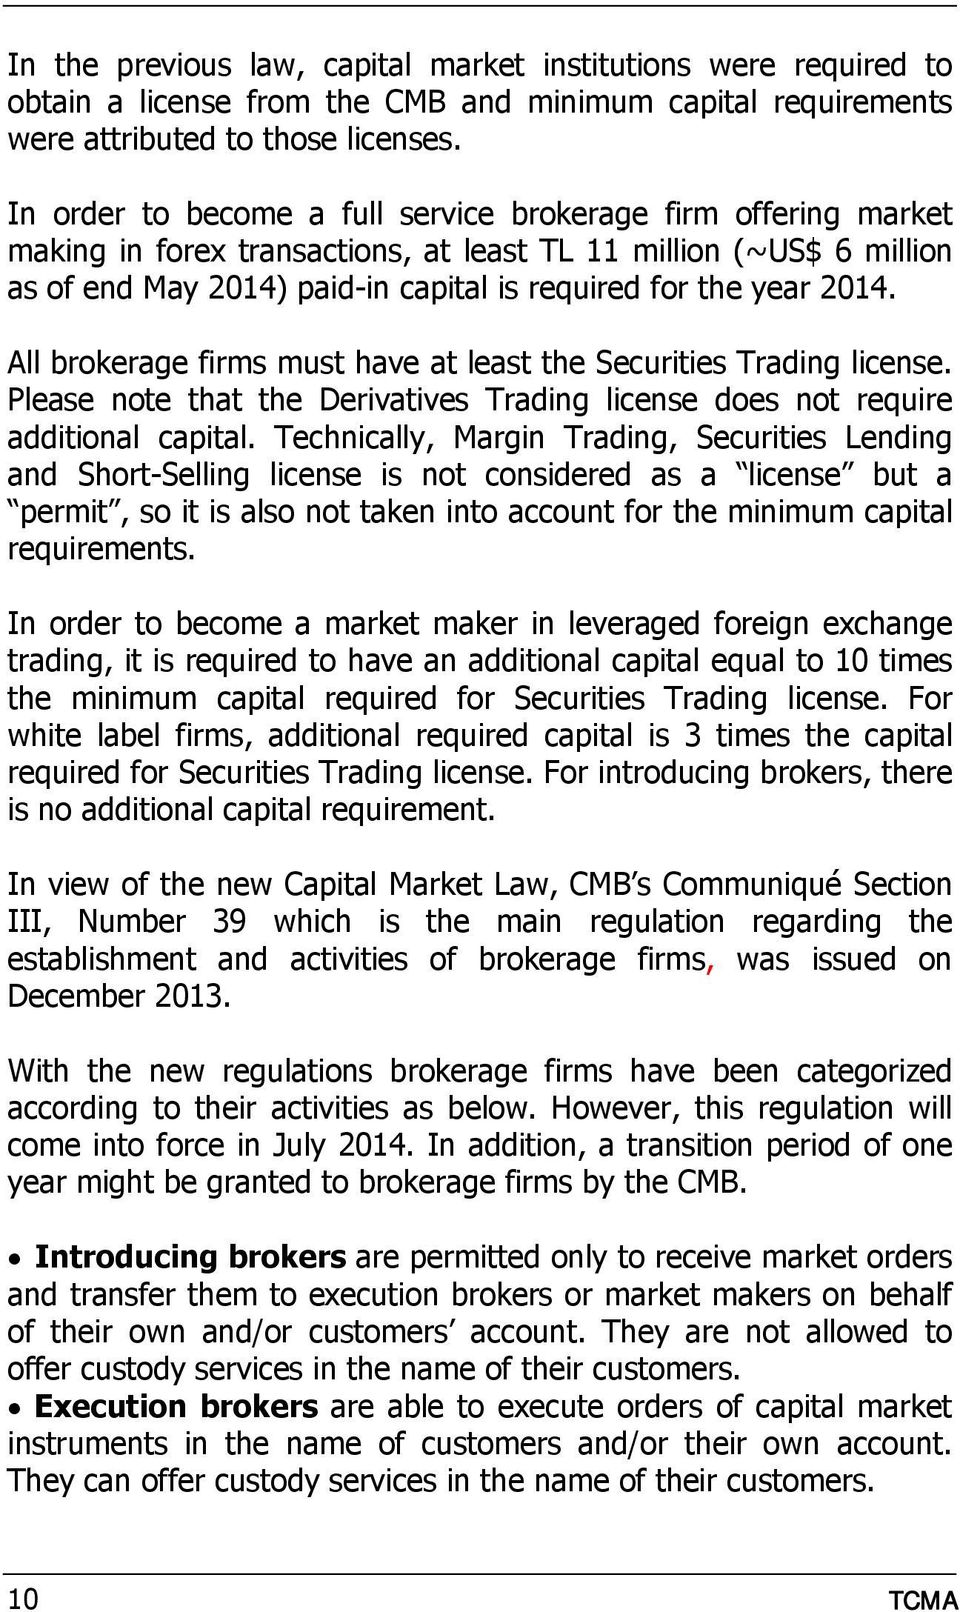 All brokerage firms must have at least the Securities Trading license. Please note that the Derivatives Trading license does not require additional capital.